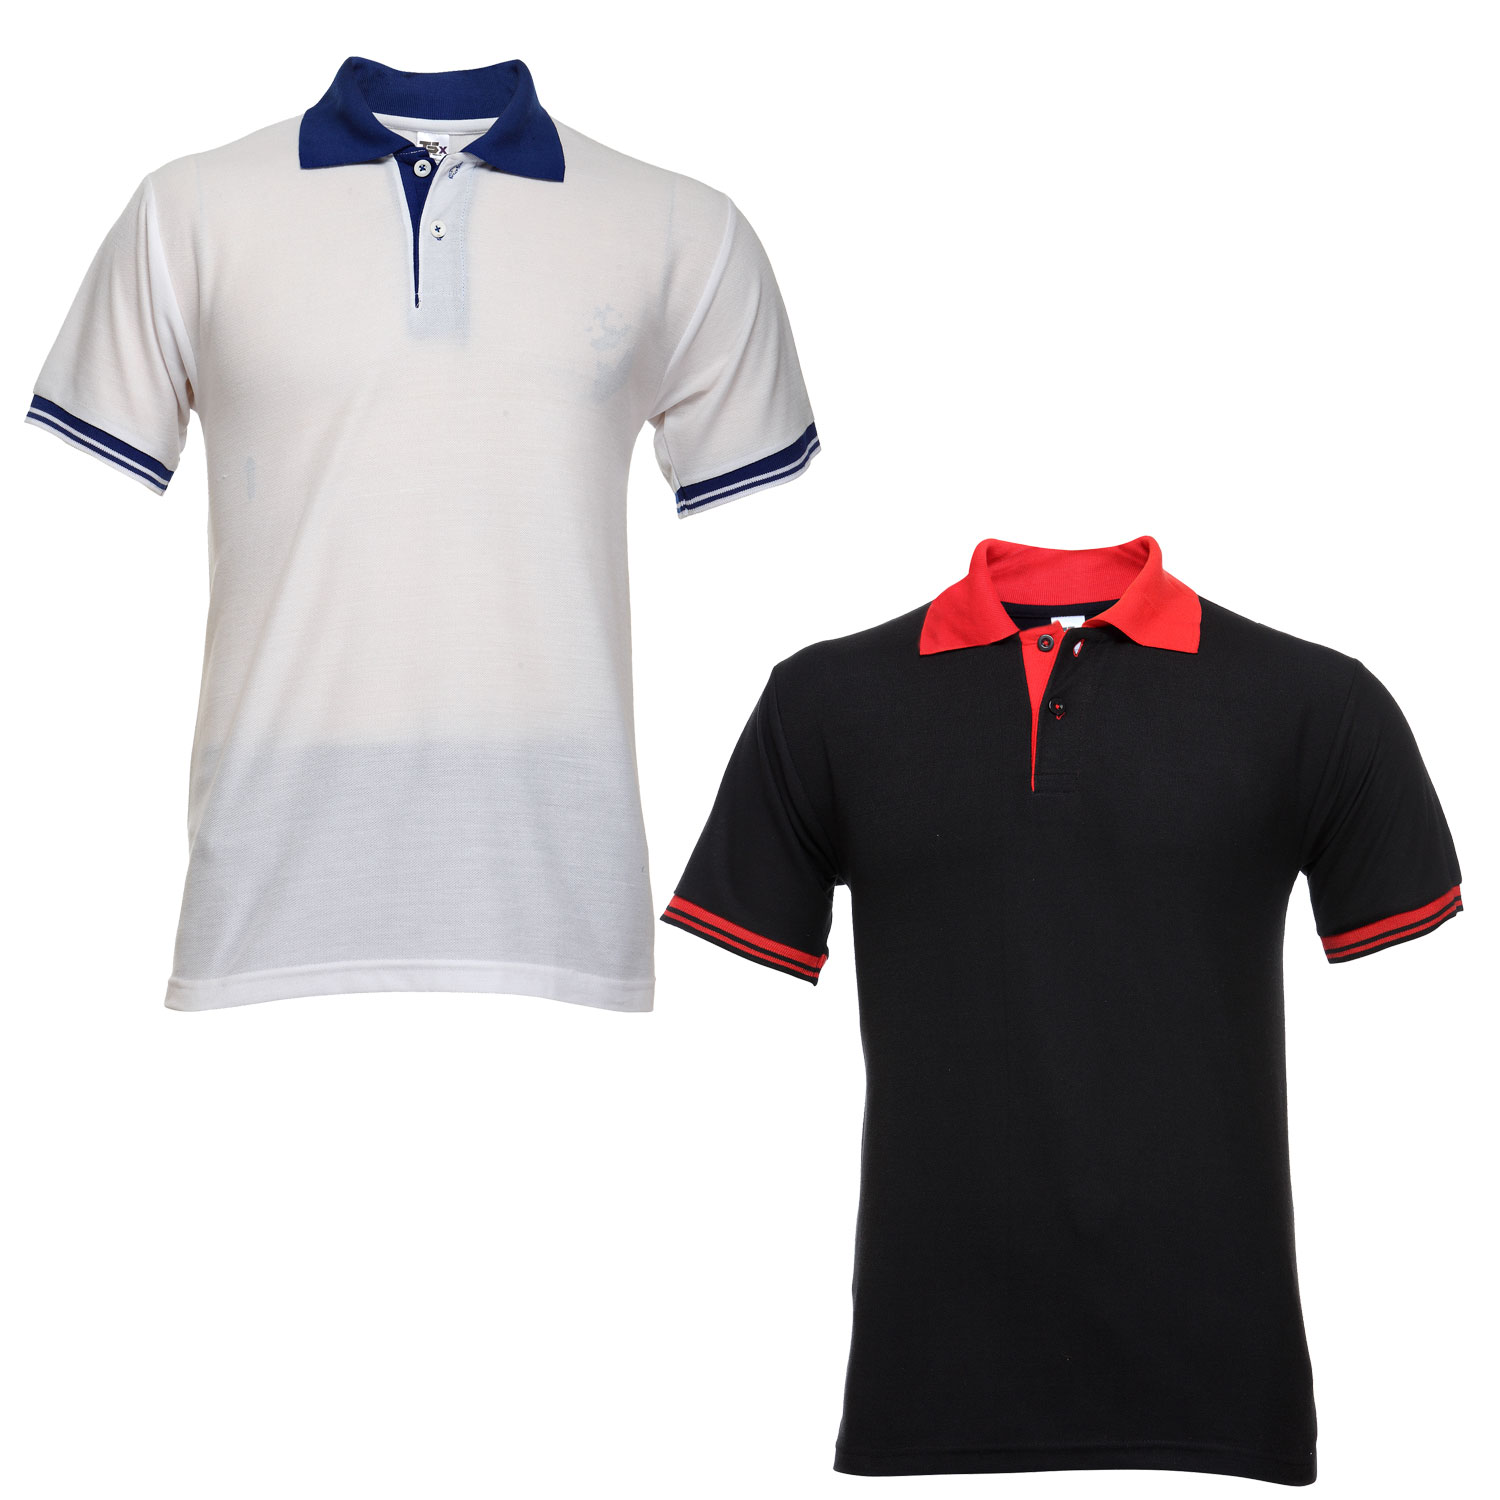 Couple t shirts online india amazon for Buy couple t shirts online india